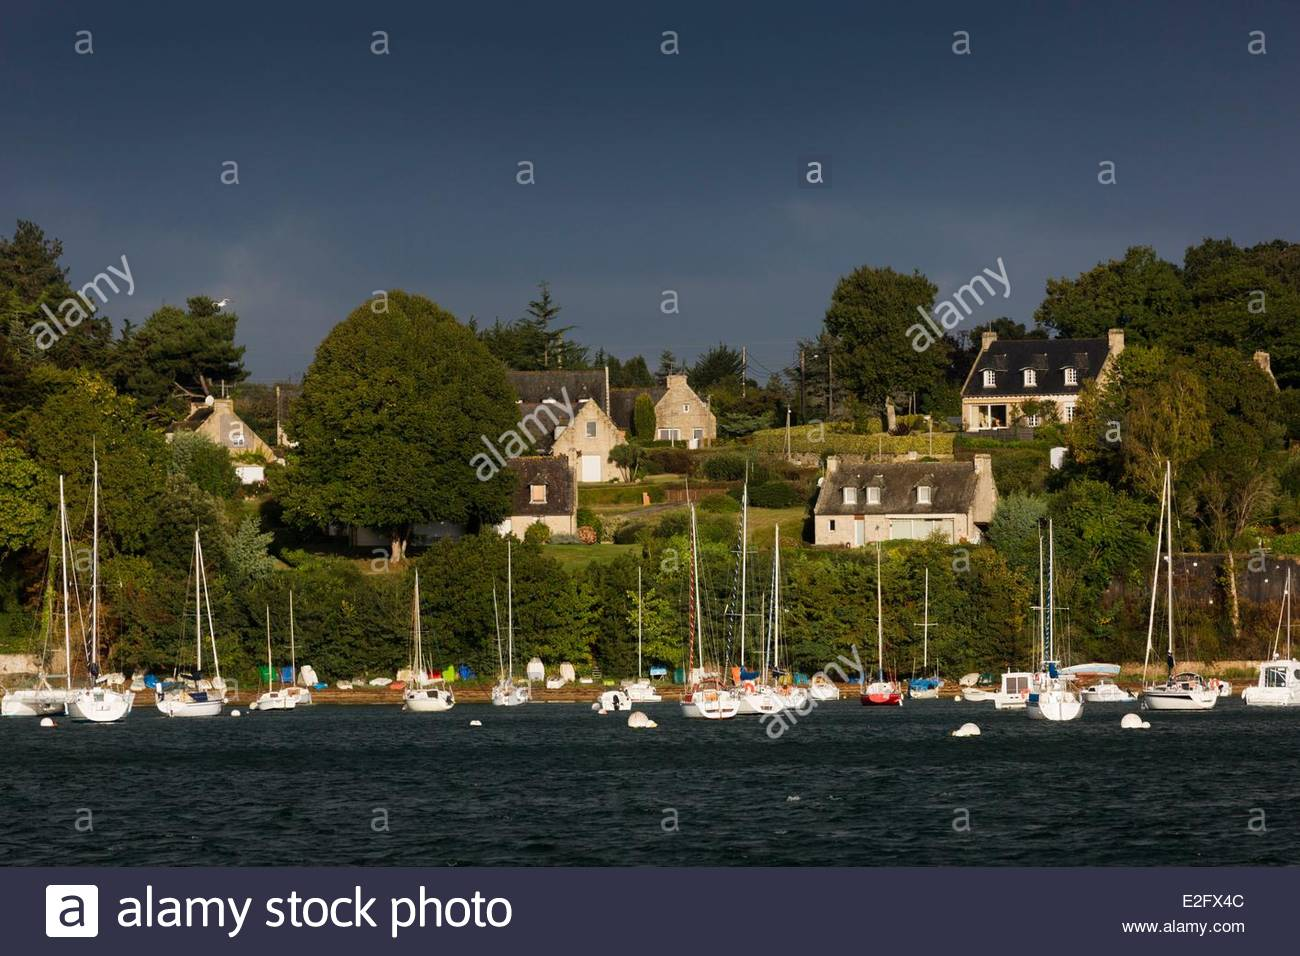 France Ille et Vilaine Cote d'Emeraude (Emerald Coast) Rance Valley St Malo Quelmer Rance Valley on the dock of Stock Photo